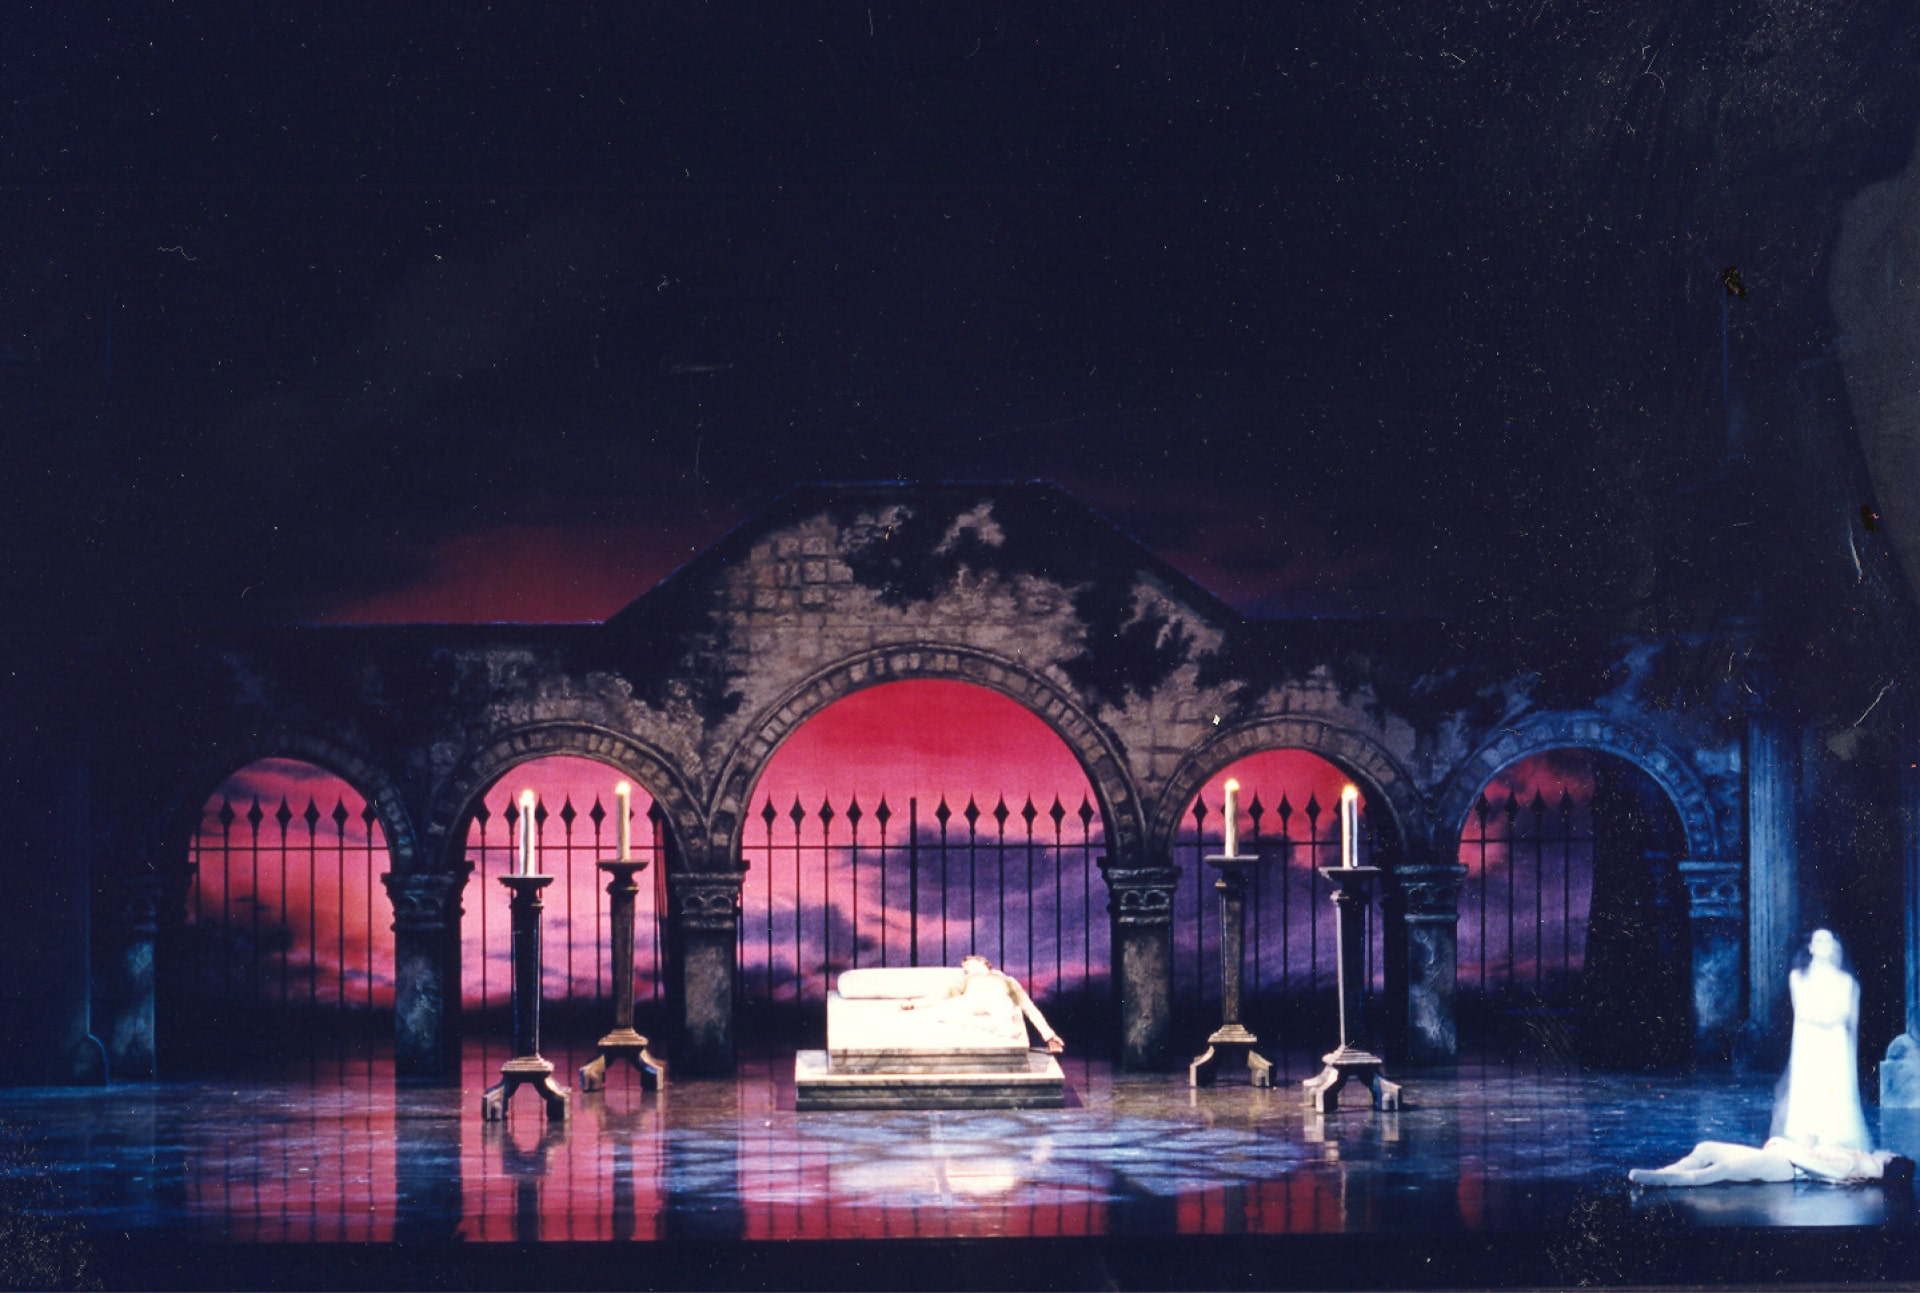 Slain figure lies on bed between tall candles under light from rose window in front of gated bridge against rose-coloured sky.